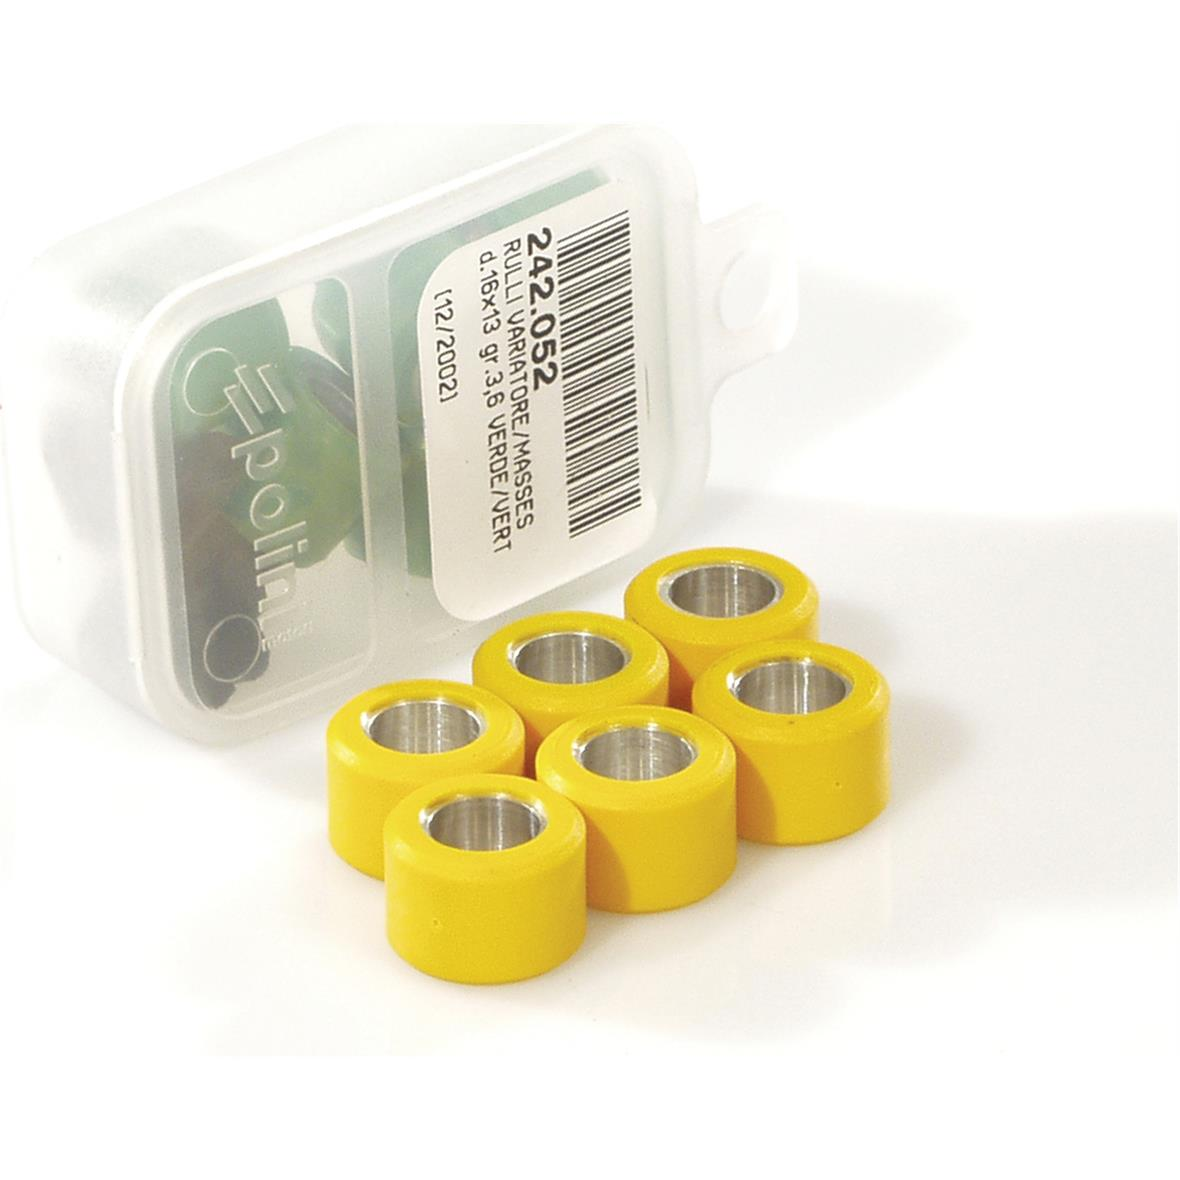 Product Image for 'Variator Rollers POLINI 23x18 mm 13gTitle'